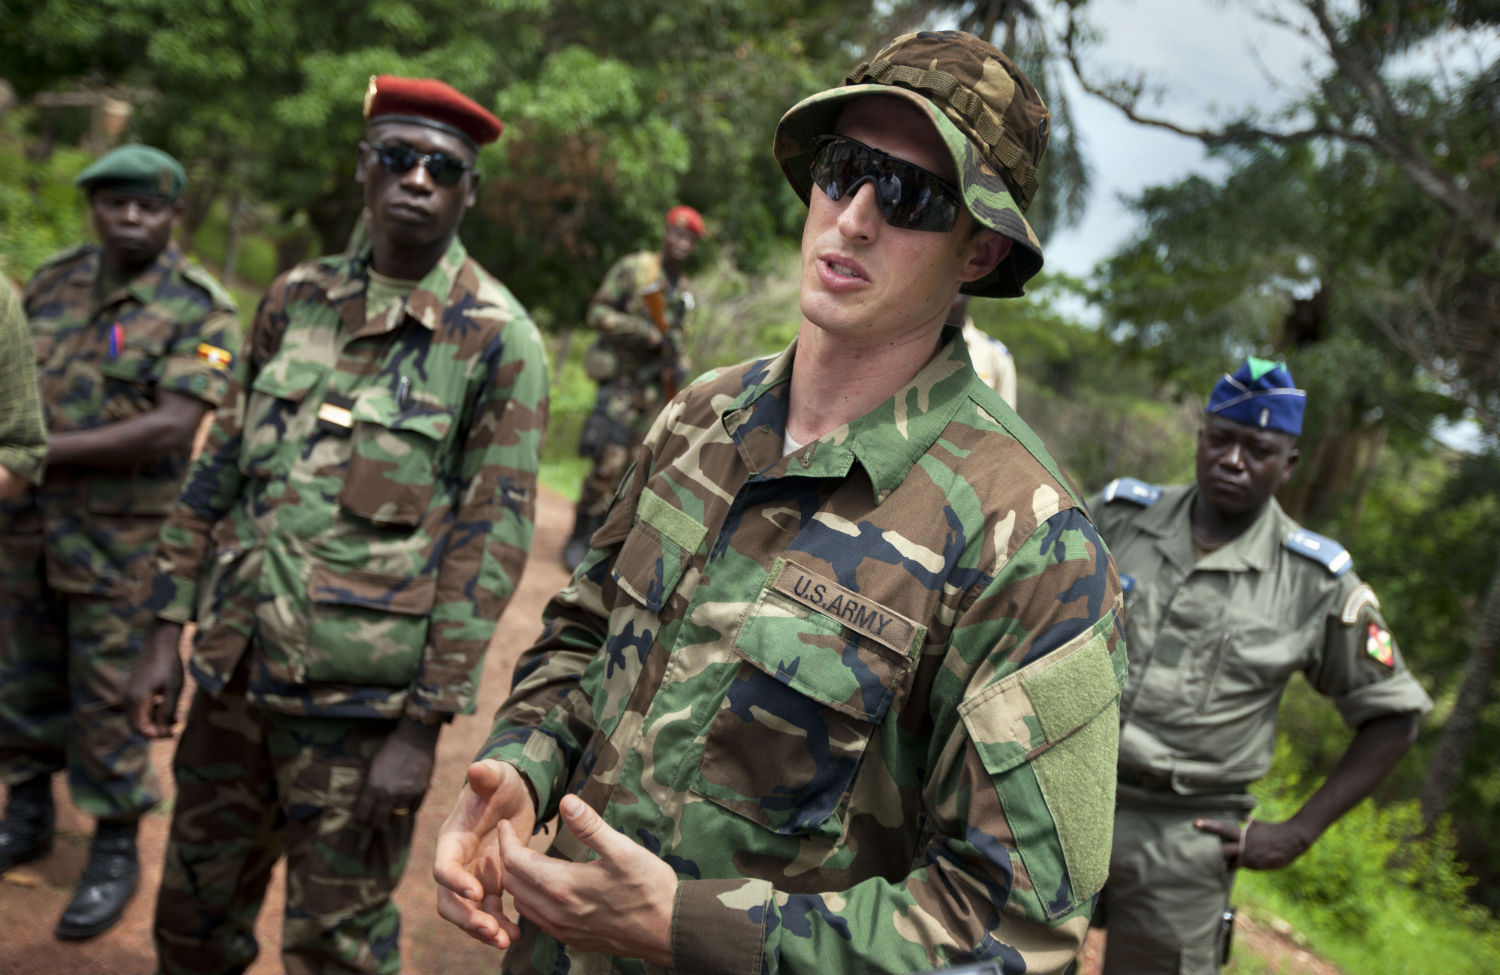 U.S. Army special forces with troops from the Central African Republic and Uganda in Obo, Central African Republic (Ben Curtis/AP)